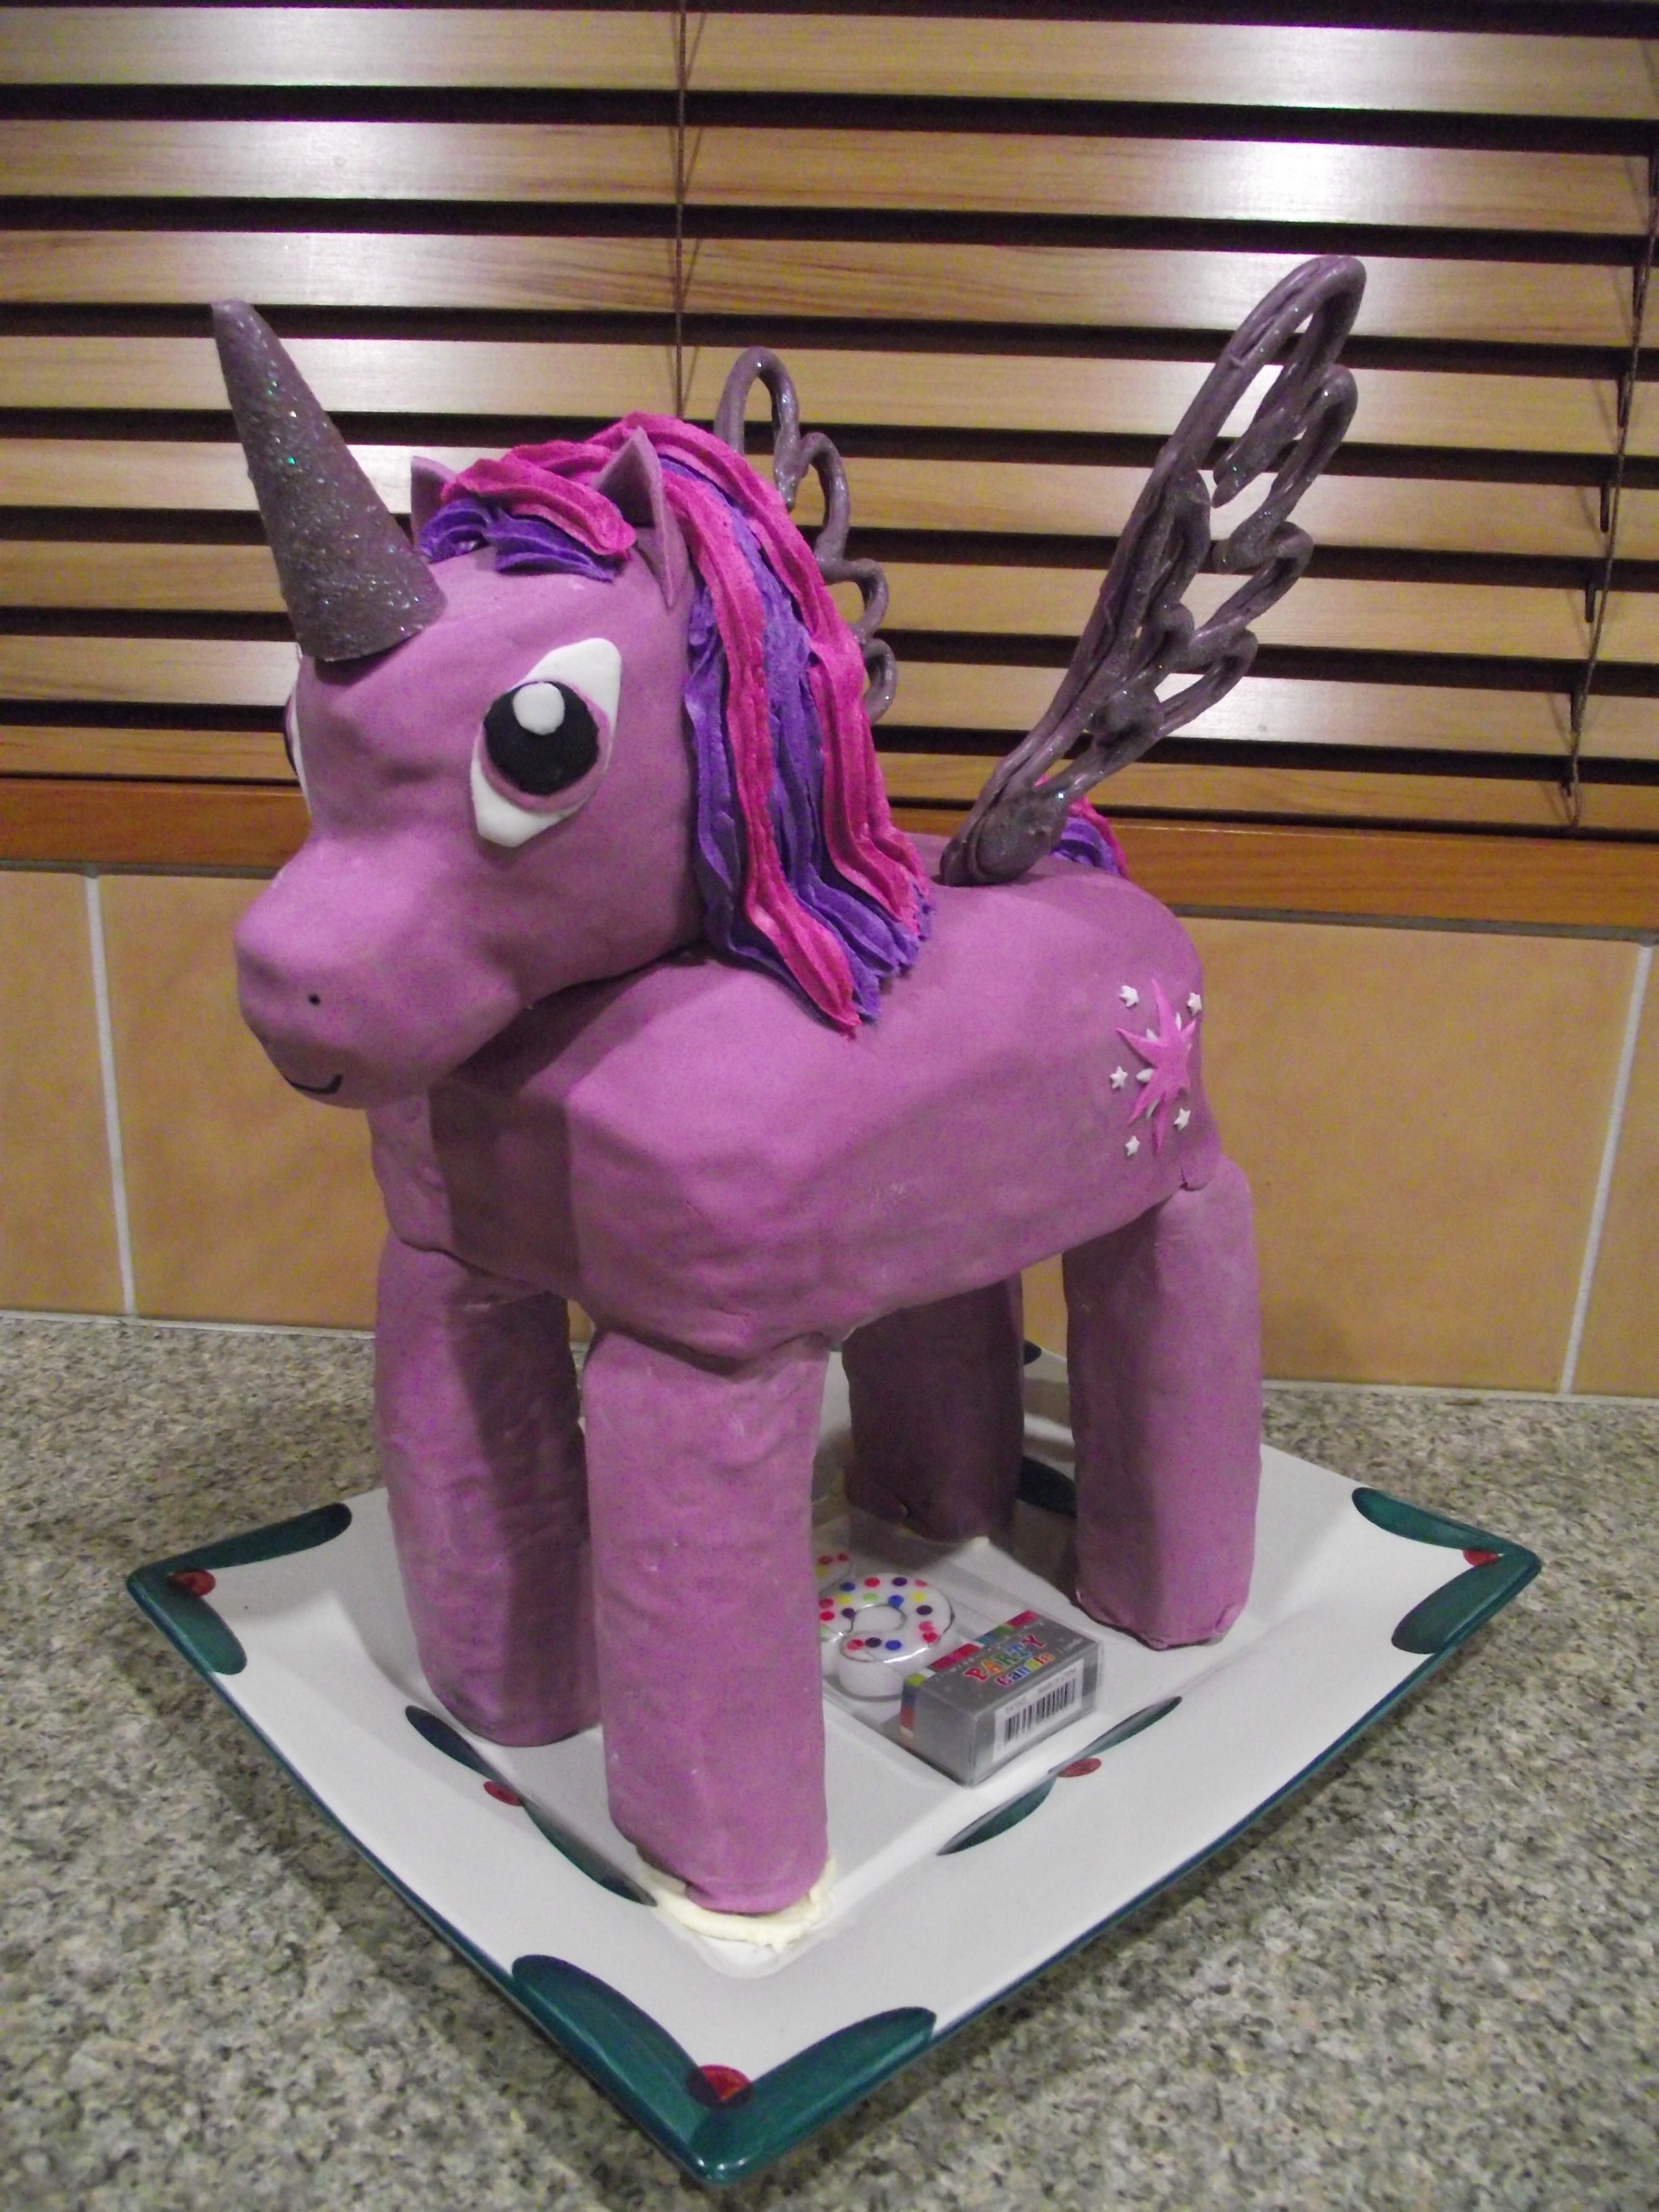 Taylors 5th birthday cake My Little Pony Twilight Sparkle with